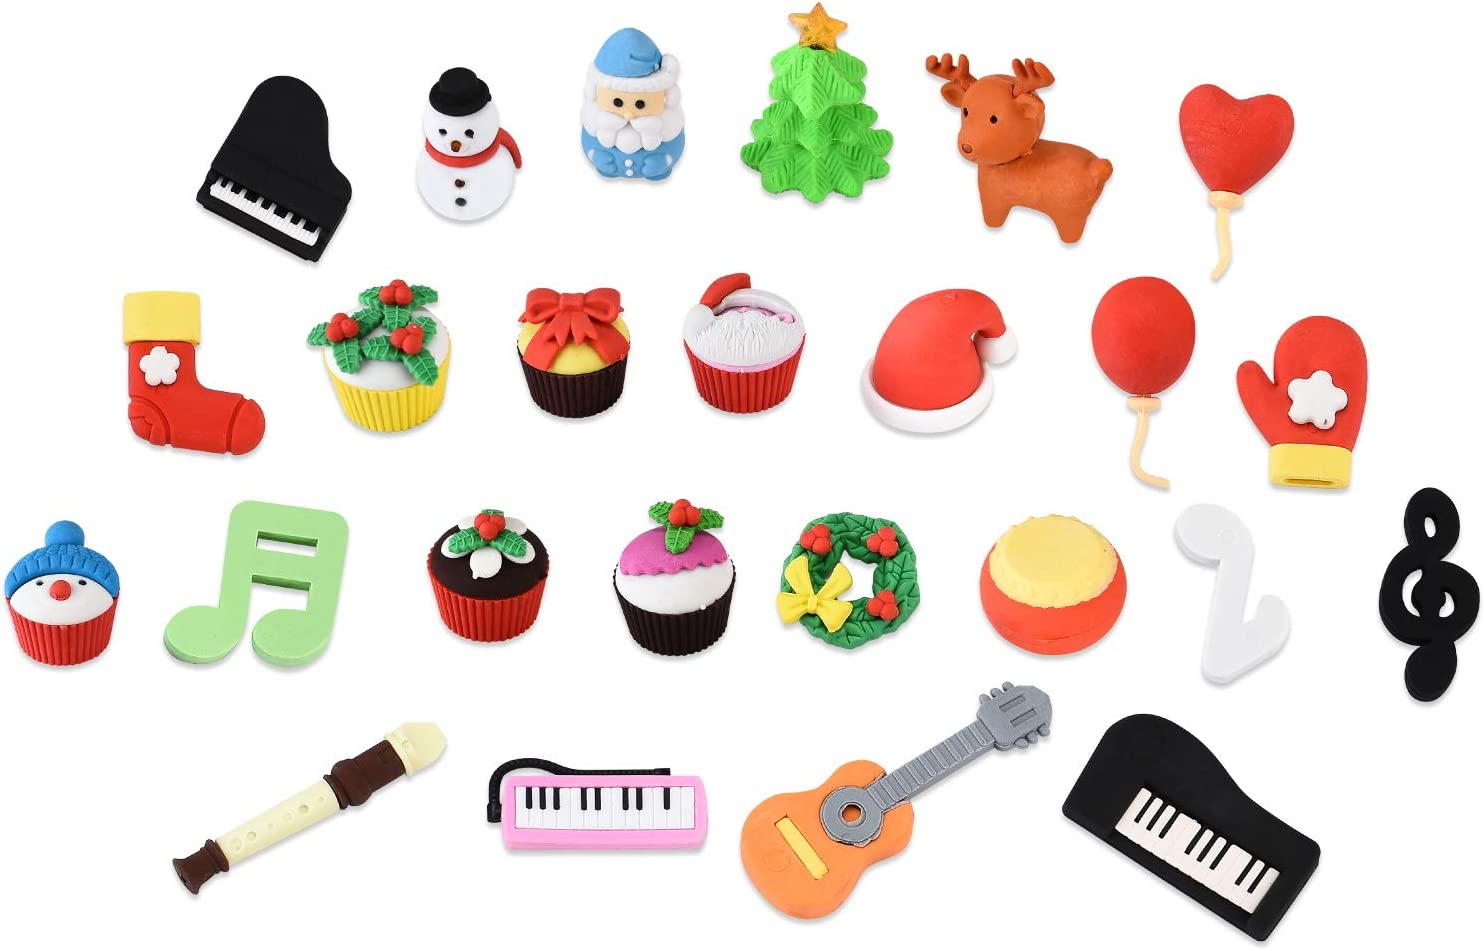 Joanna Reid Collectible Set of Adorable Puzzle Christmas Erasers for Kids Value Pack - No Duplicates - Puzzle Toys Best for Party Favors-Treasure Box Items for Classroom- Xmas Gift(25PCs)